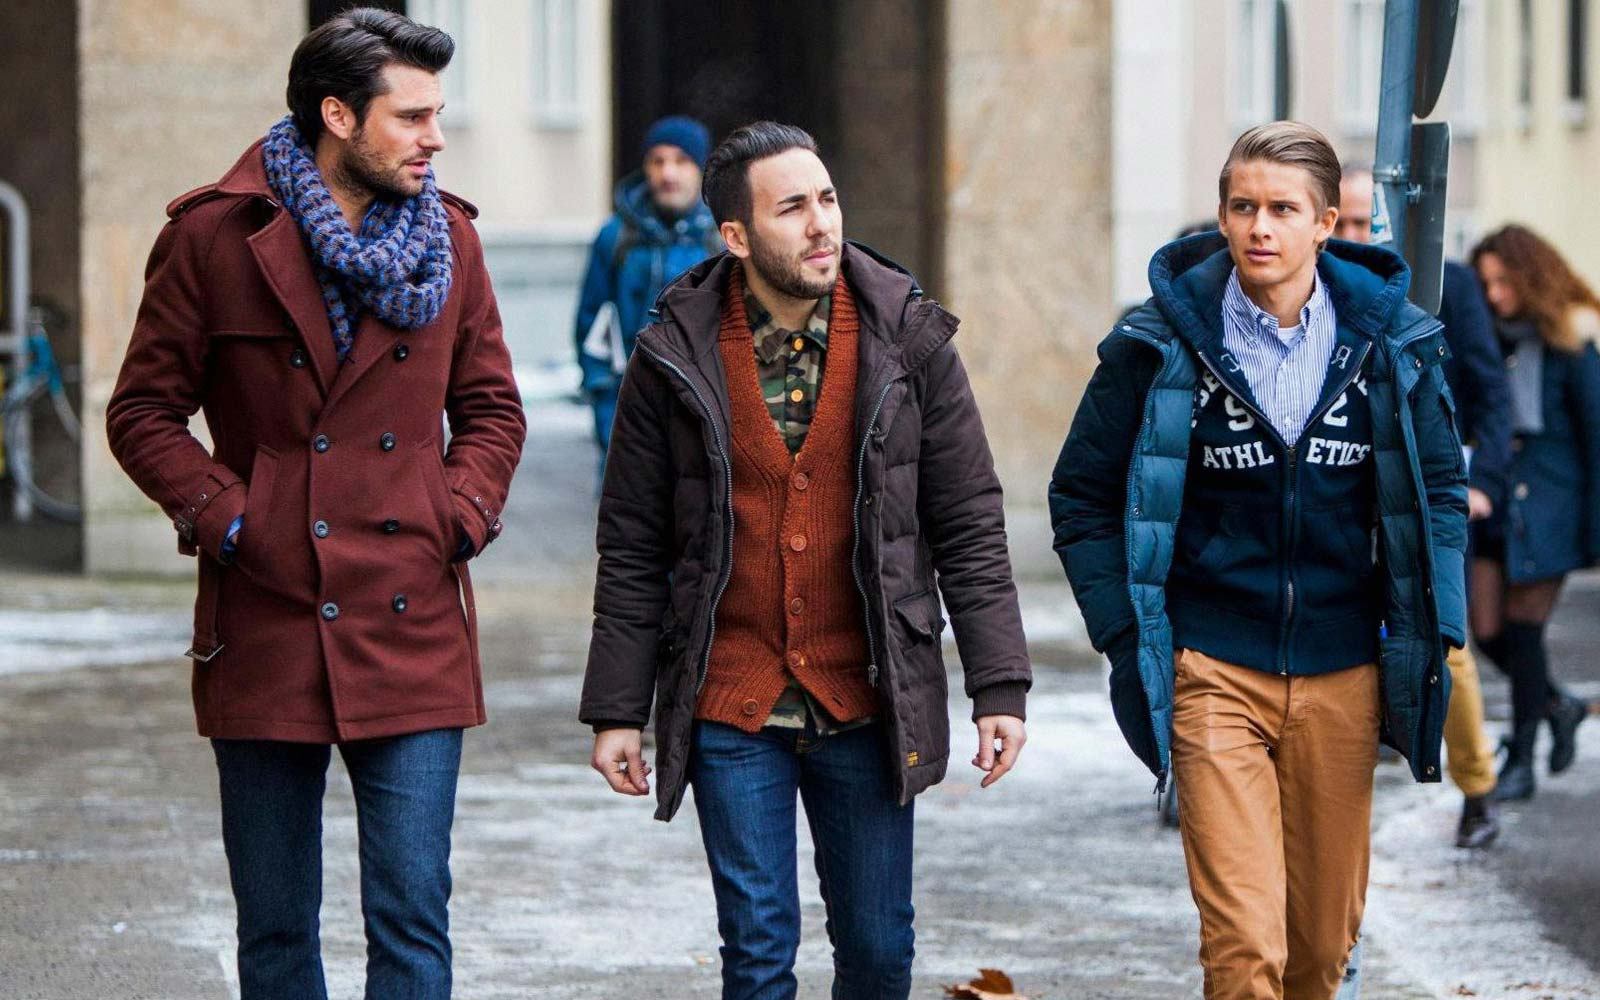 Men wearing various winter jackets